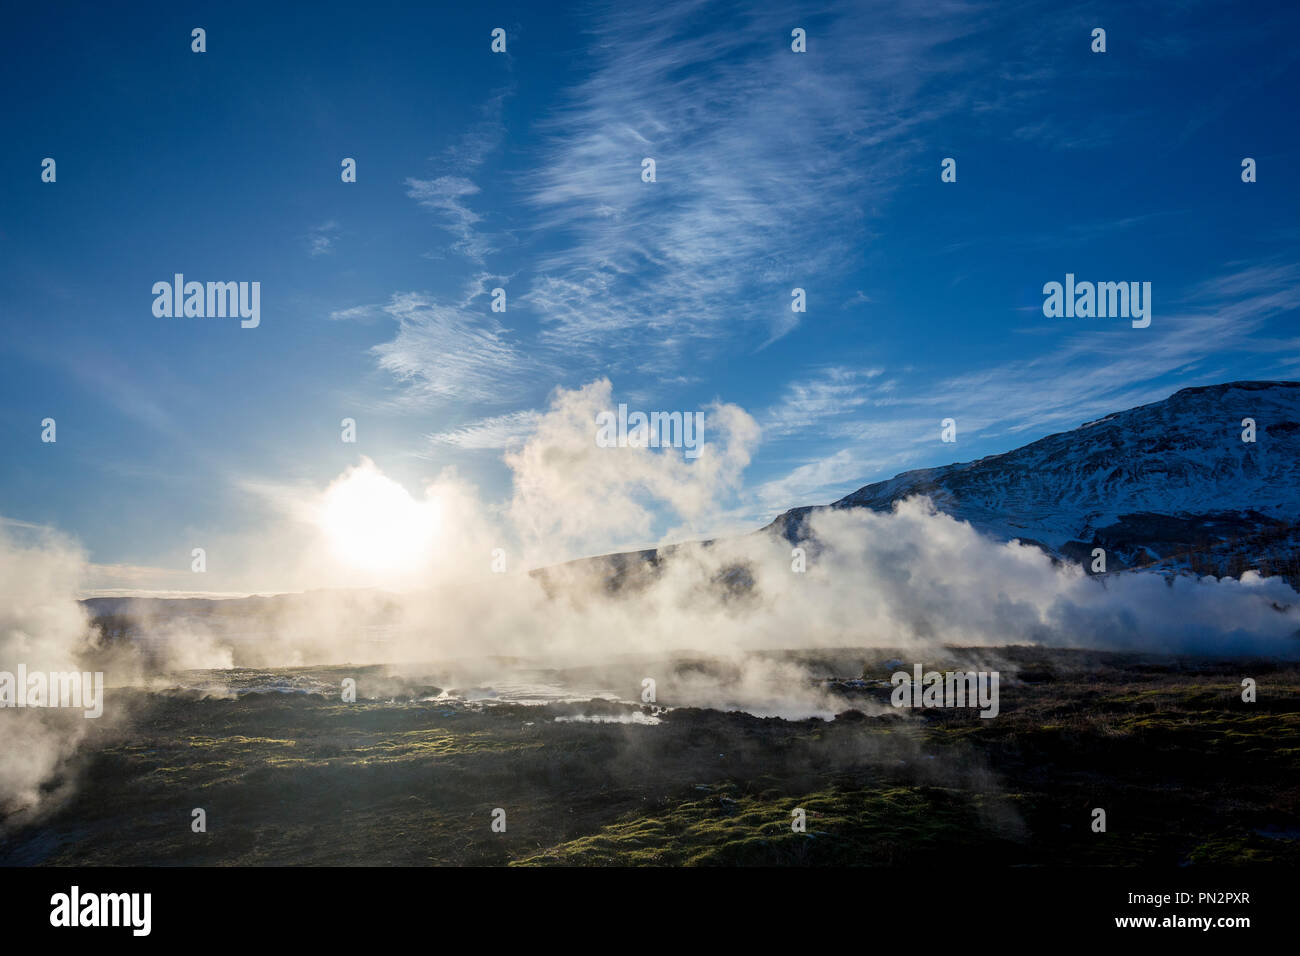 Geysir Geothermal Area - steam rising from a field of hot pools and water spouts at one of Iceland's most famous geysers Stock Photo